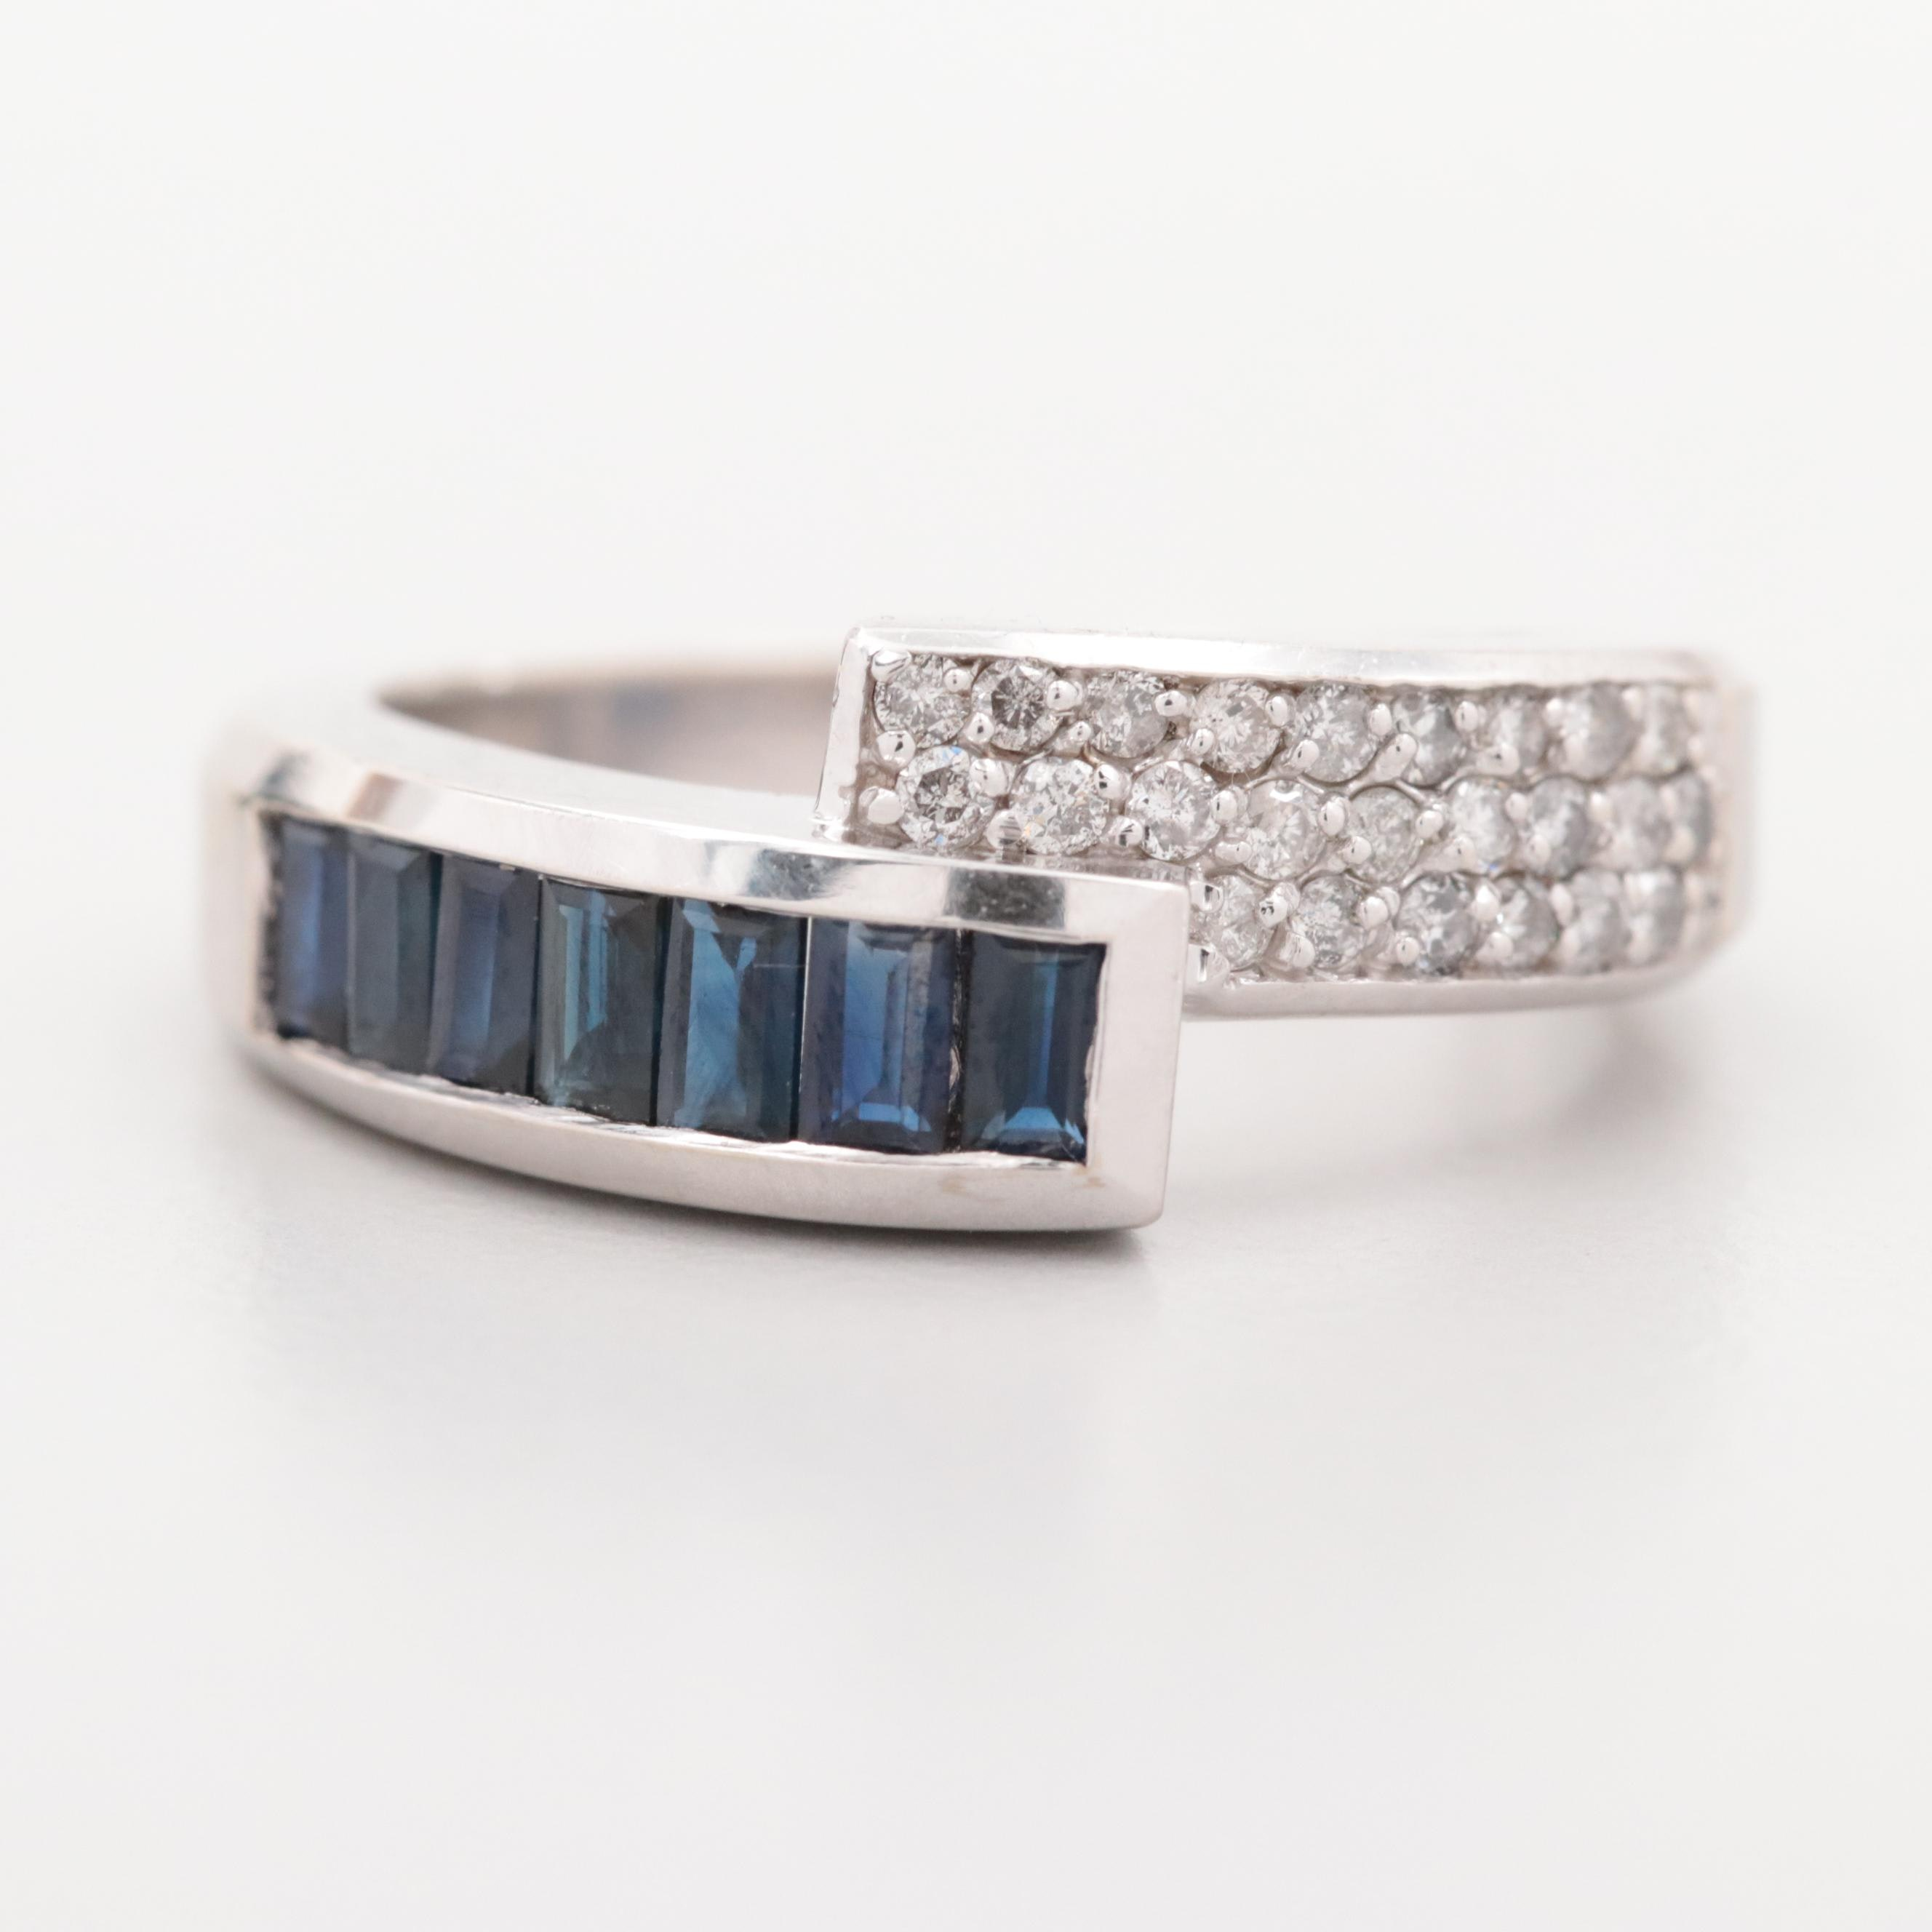 14K White Gold Diamond and Blue Sapphire Ring